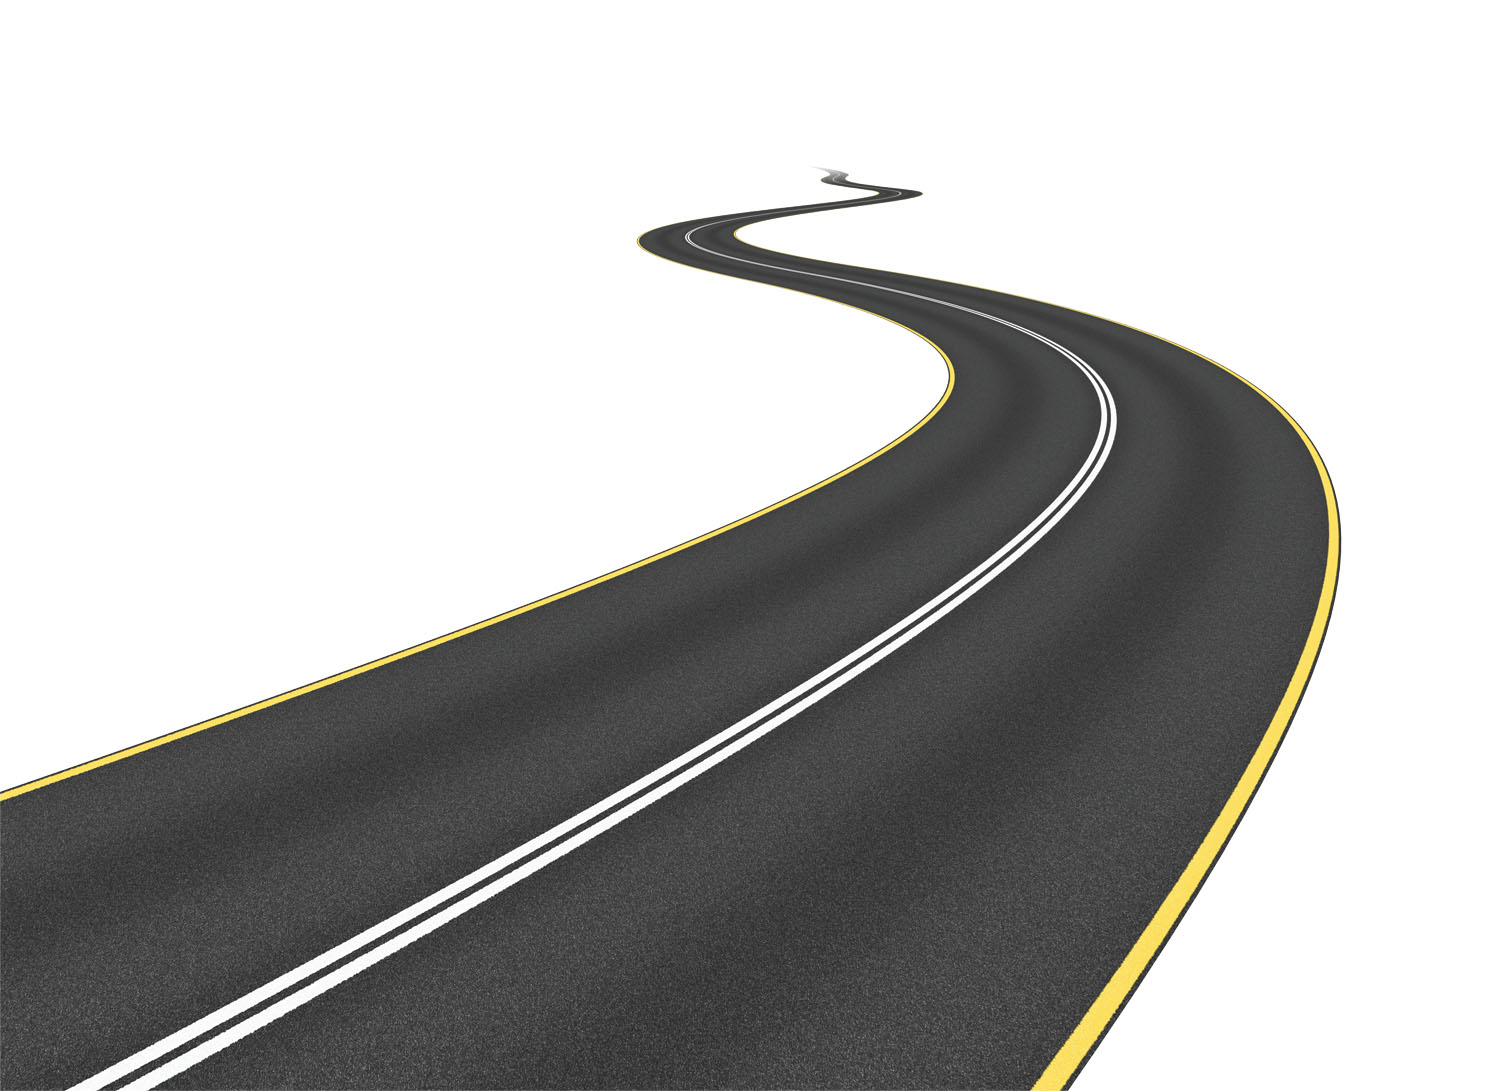 Free highway cliparts download. Clipart road long road